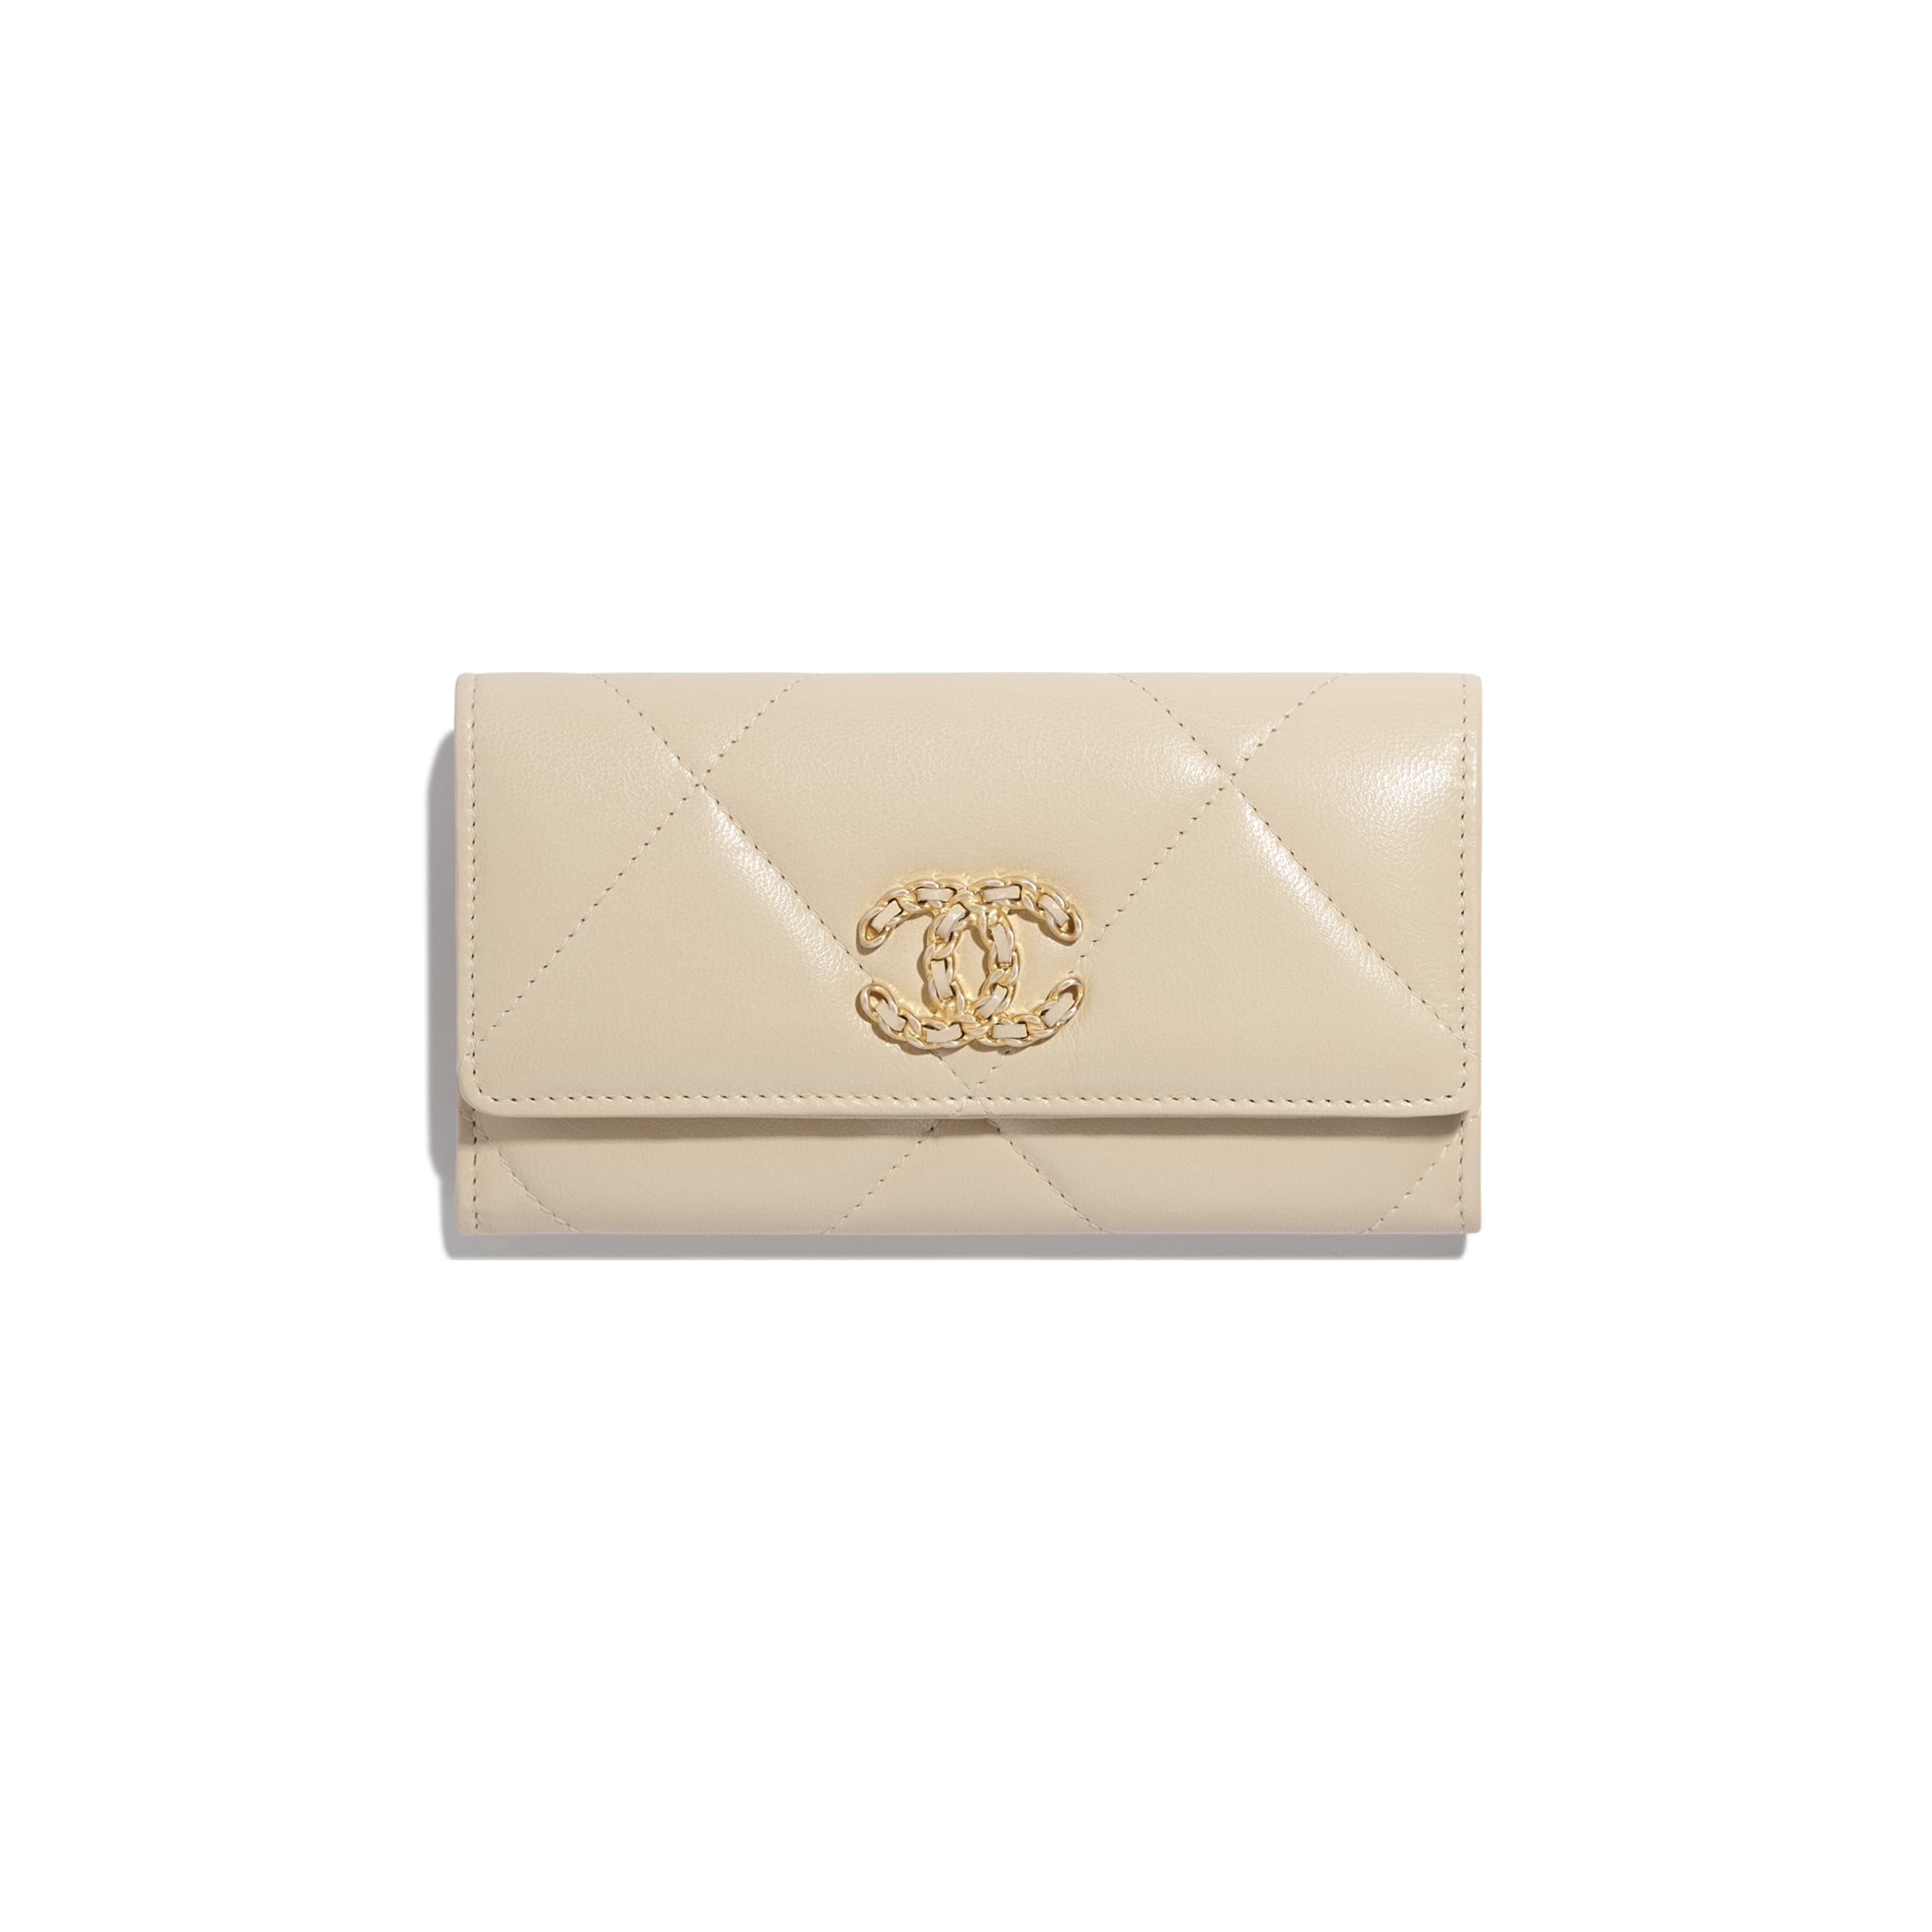 CHANEL 19 Flap Wallet - Beige - Goatskin, Gold-Tone, Silver-Tone & Ruthenium-Finish Metal - Default view - see standard sized version